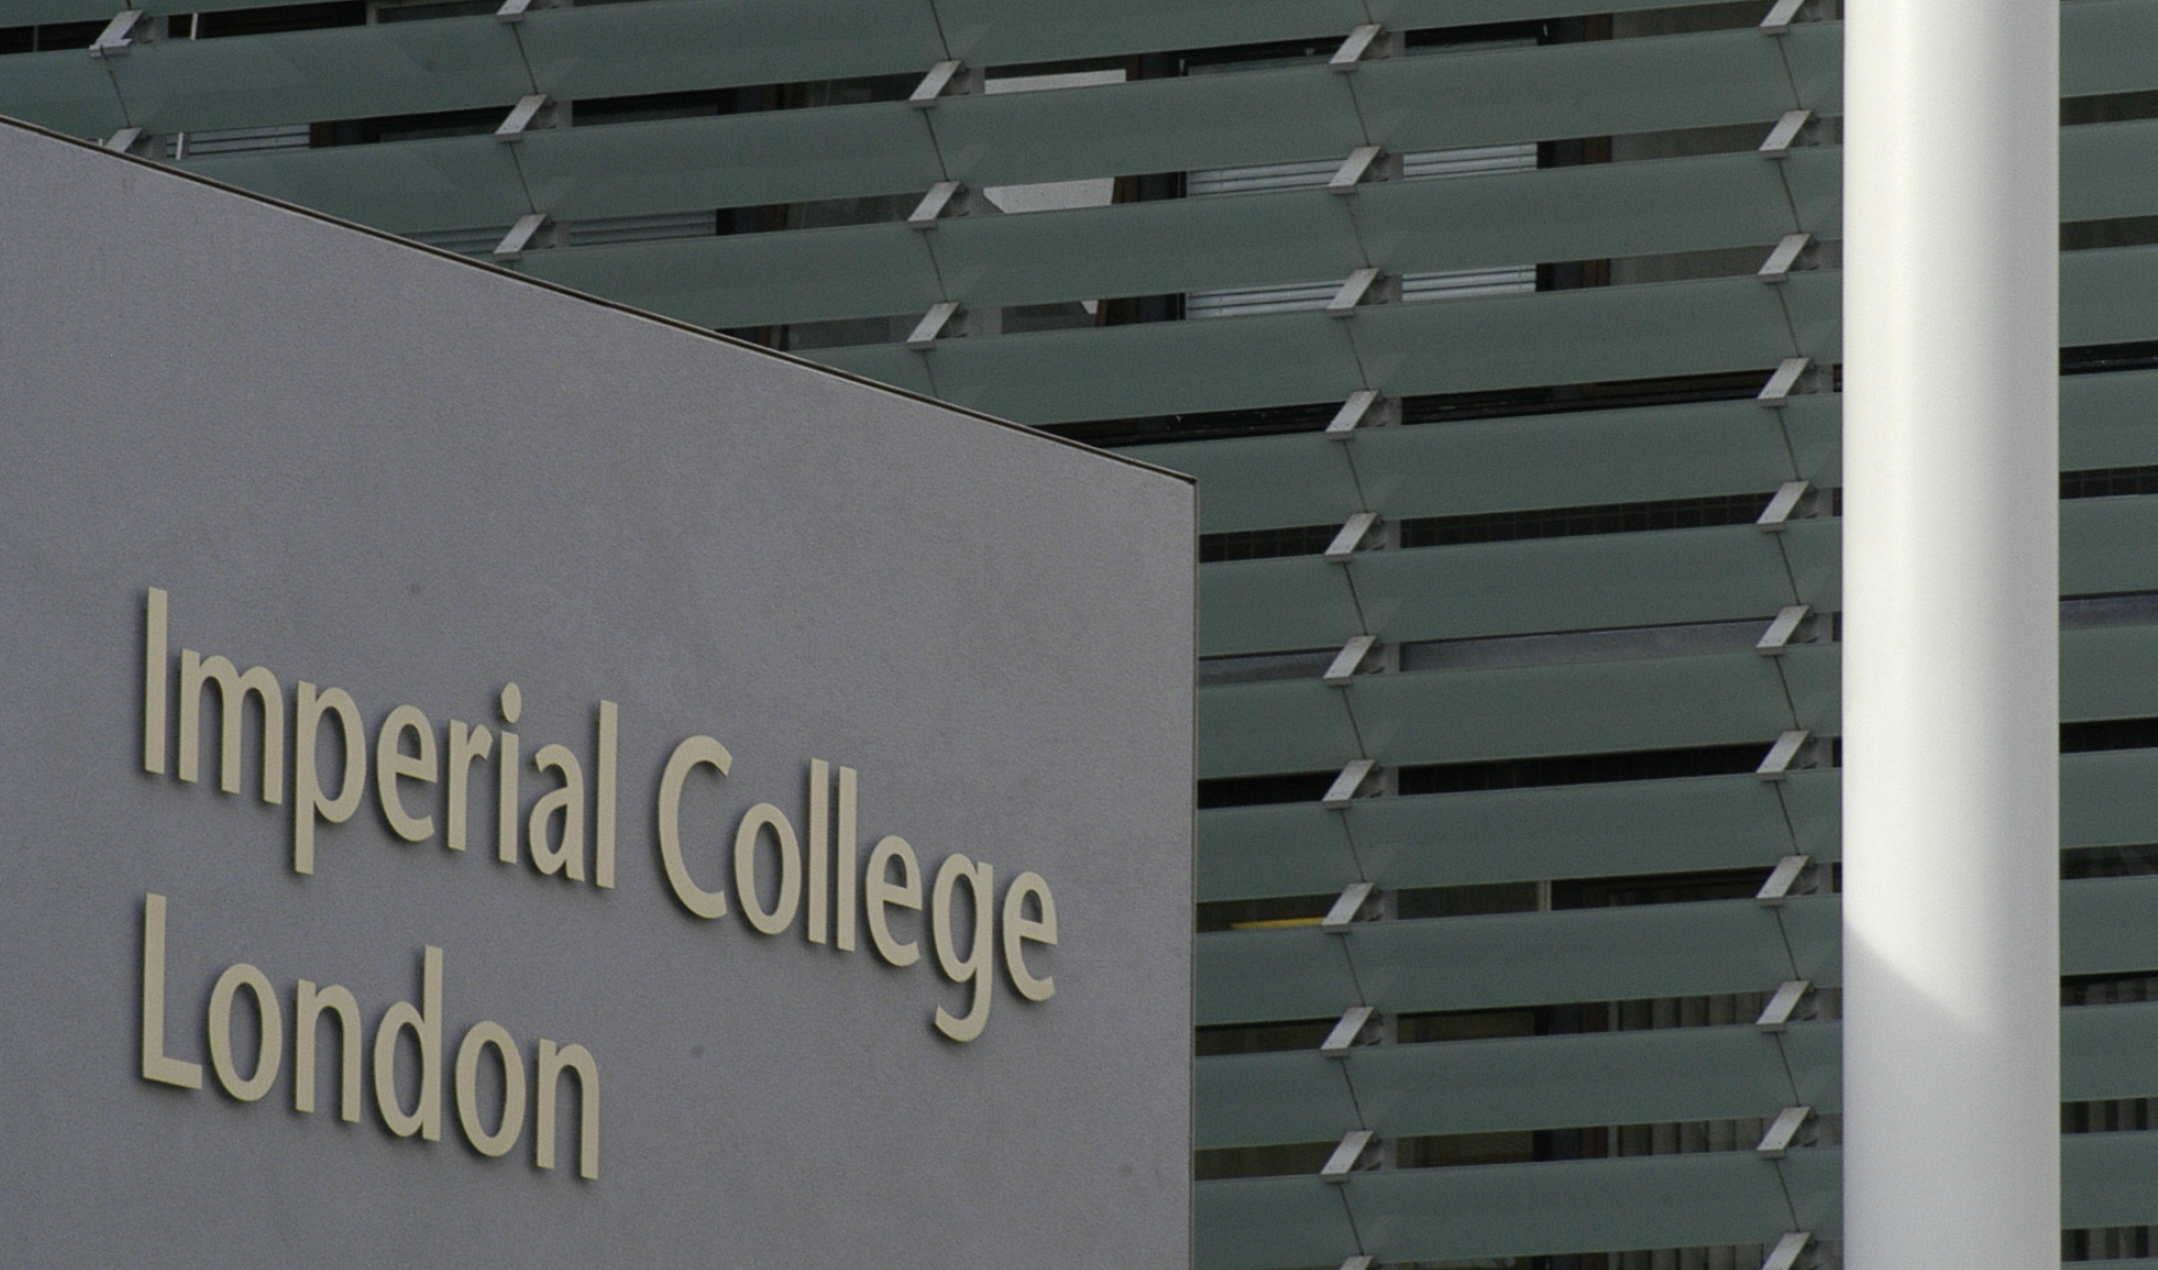 Image of the lettering of Imperial College London